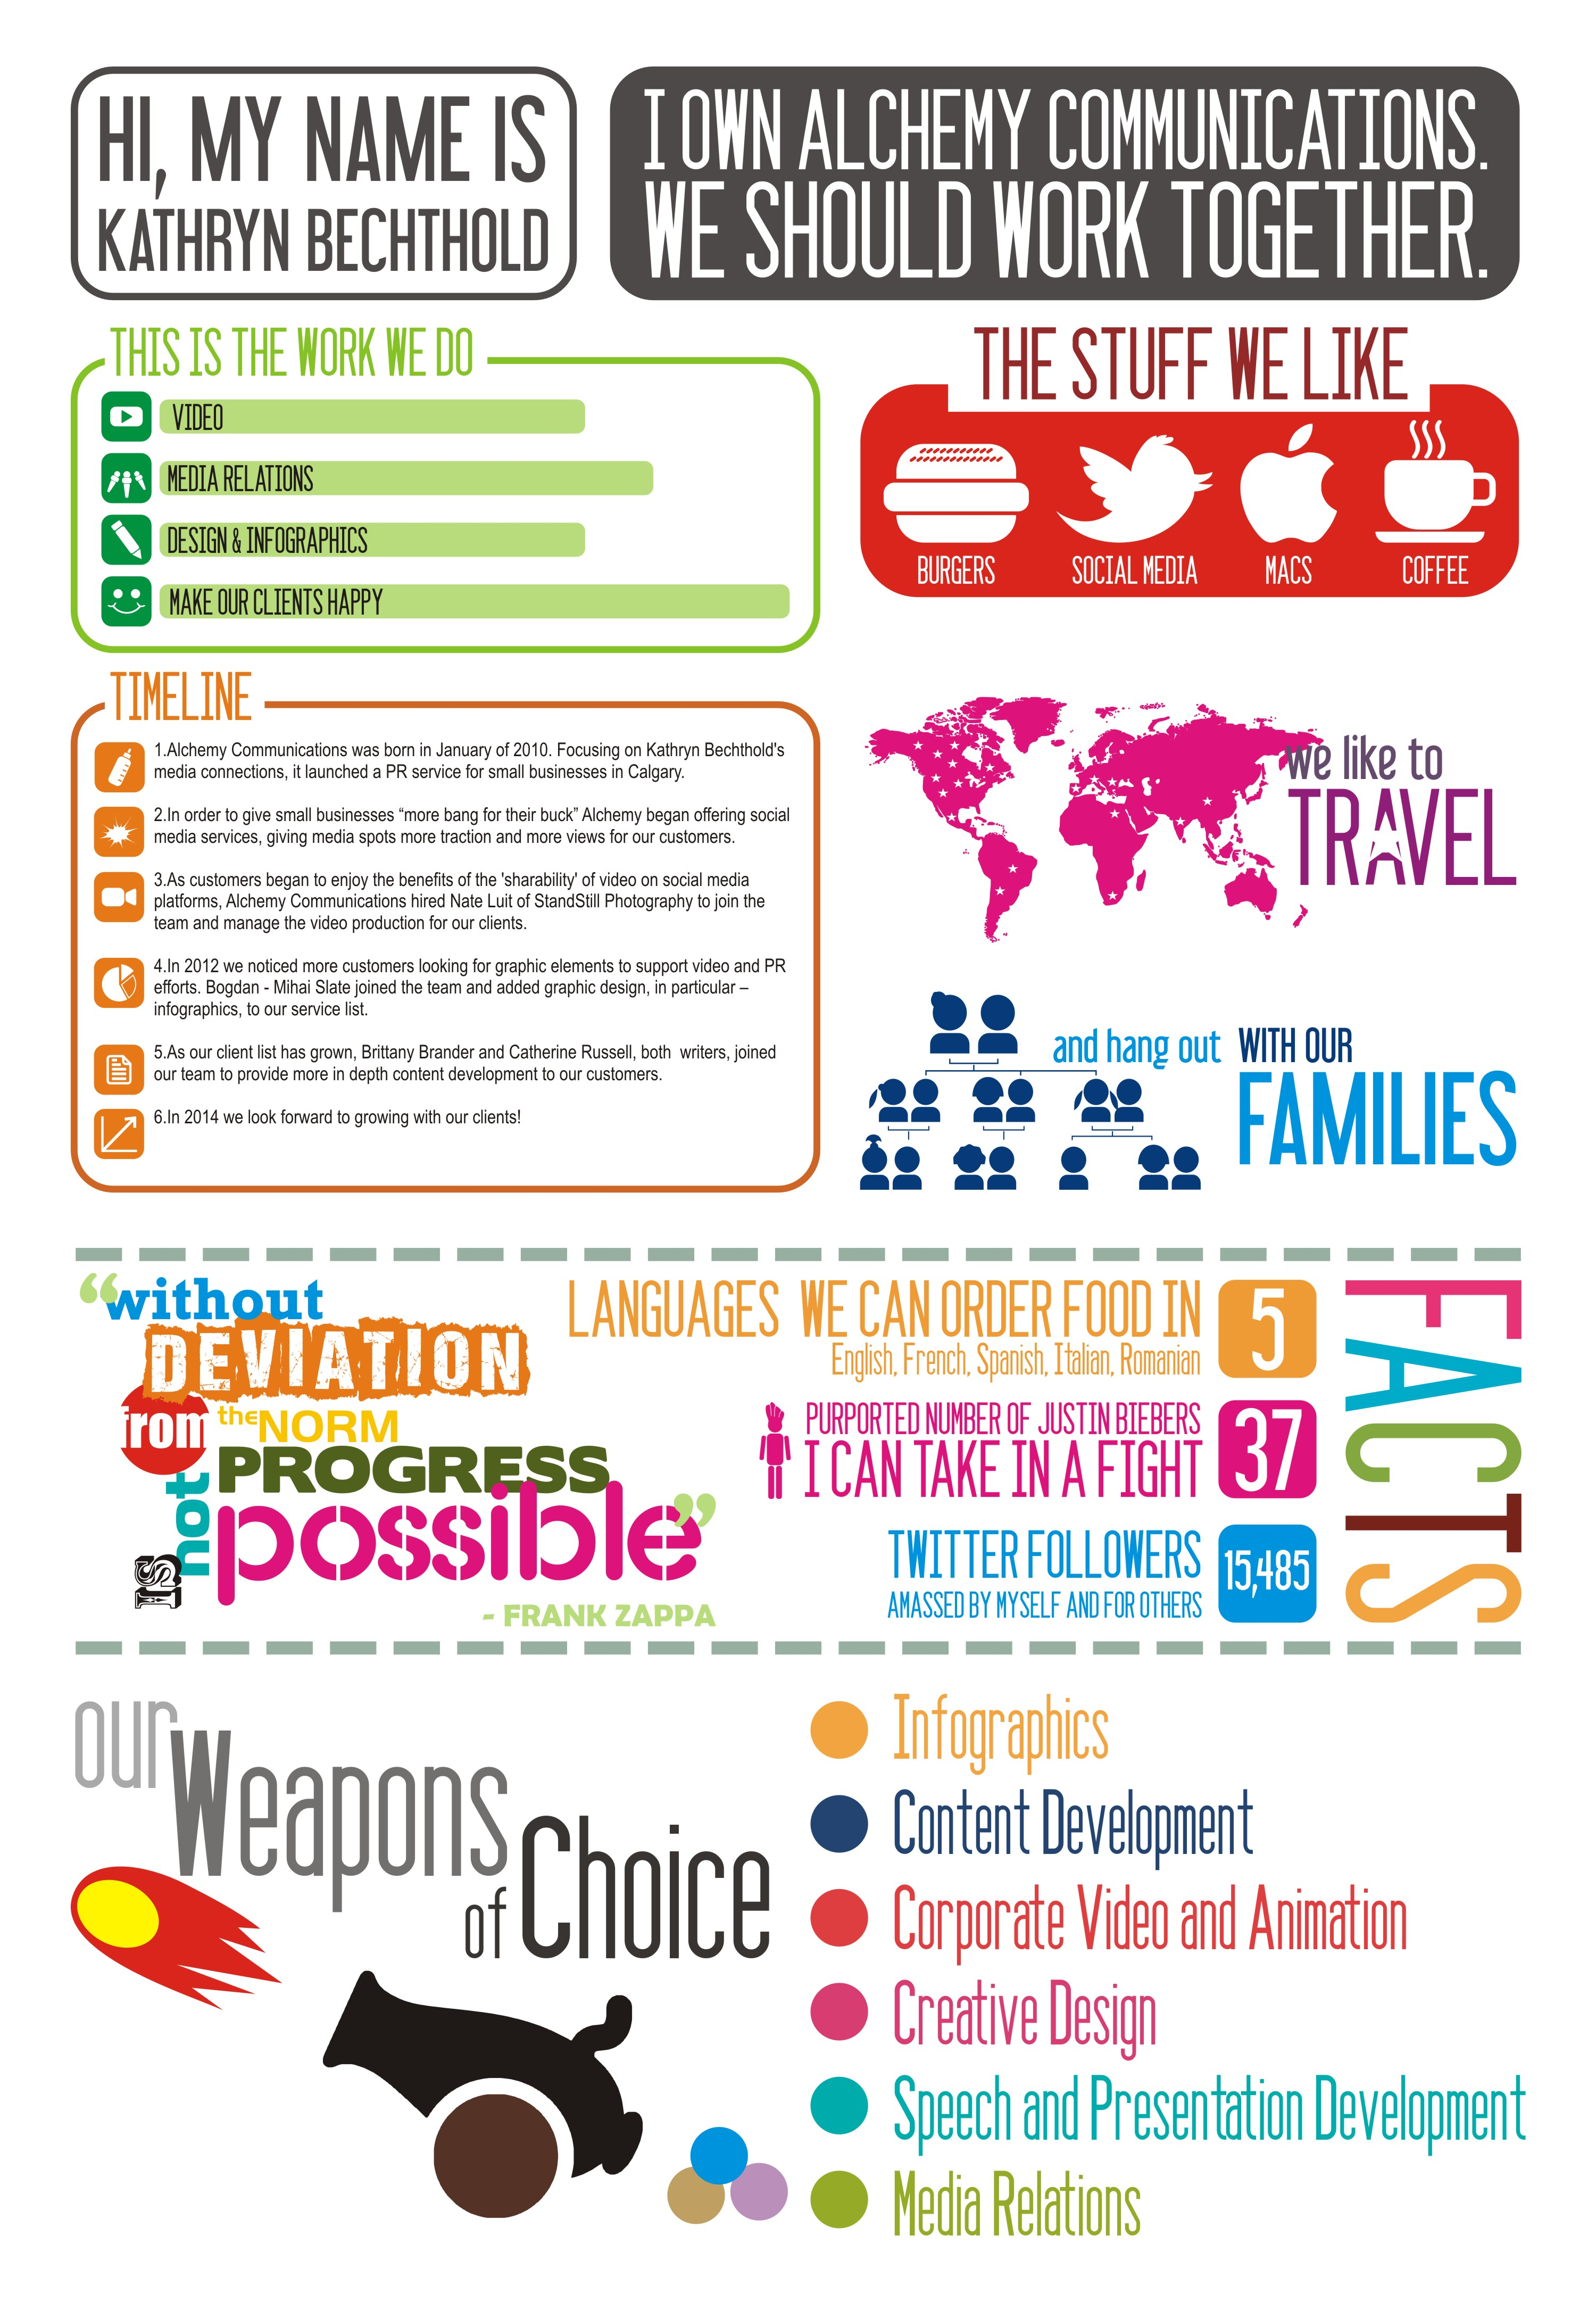 How To Improve Resume Pdf Marketing Communications Manager Resume Brand Assistant Resume  Med School Resume with Best Professional Resume Template Resume For A Pr Job Pr Resume Adminstrative Assistant Resume Pdf